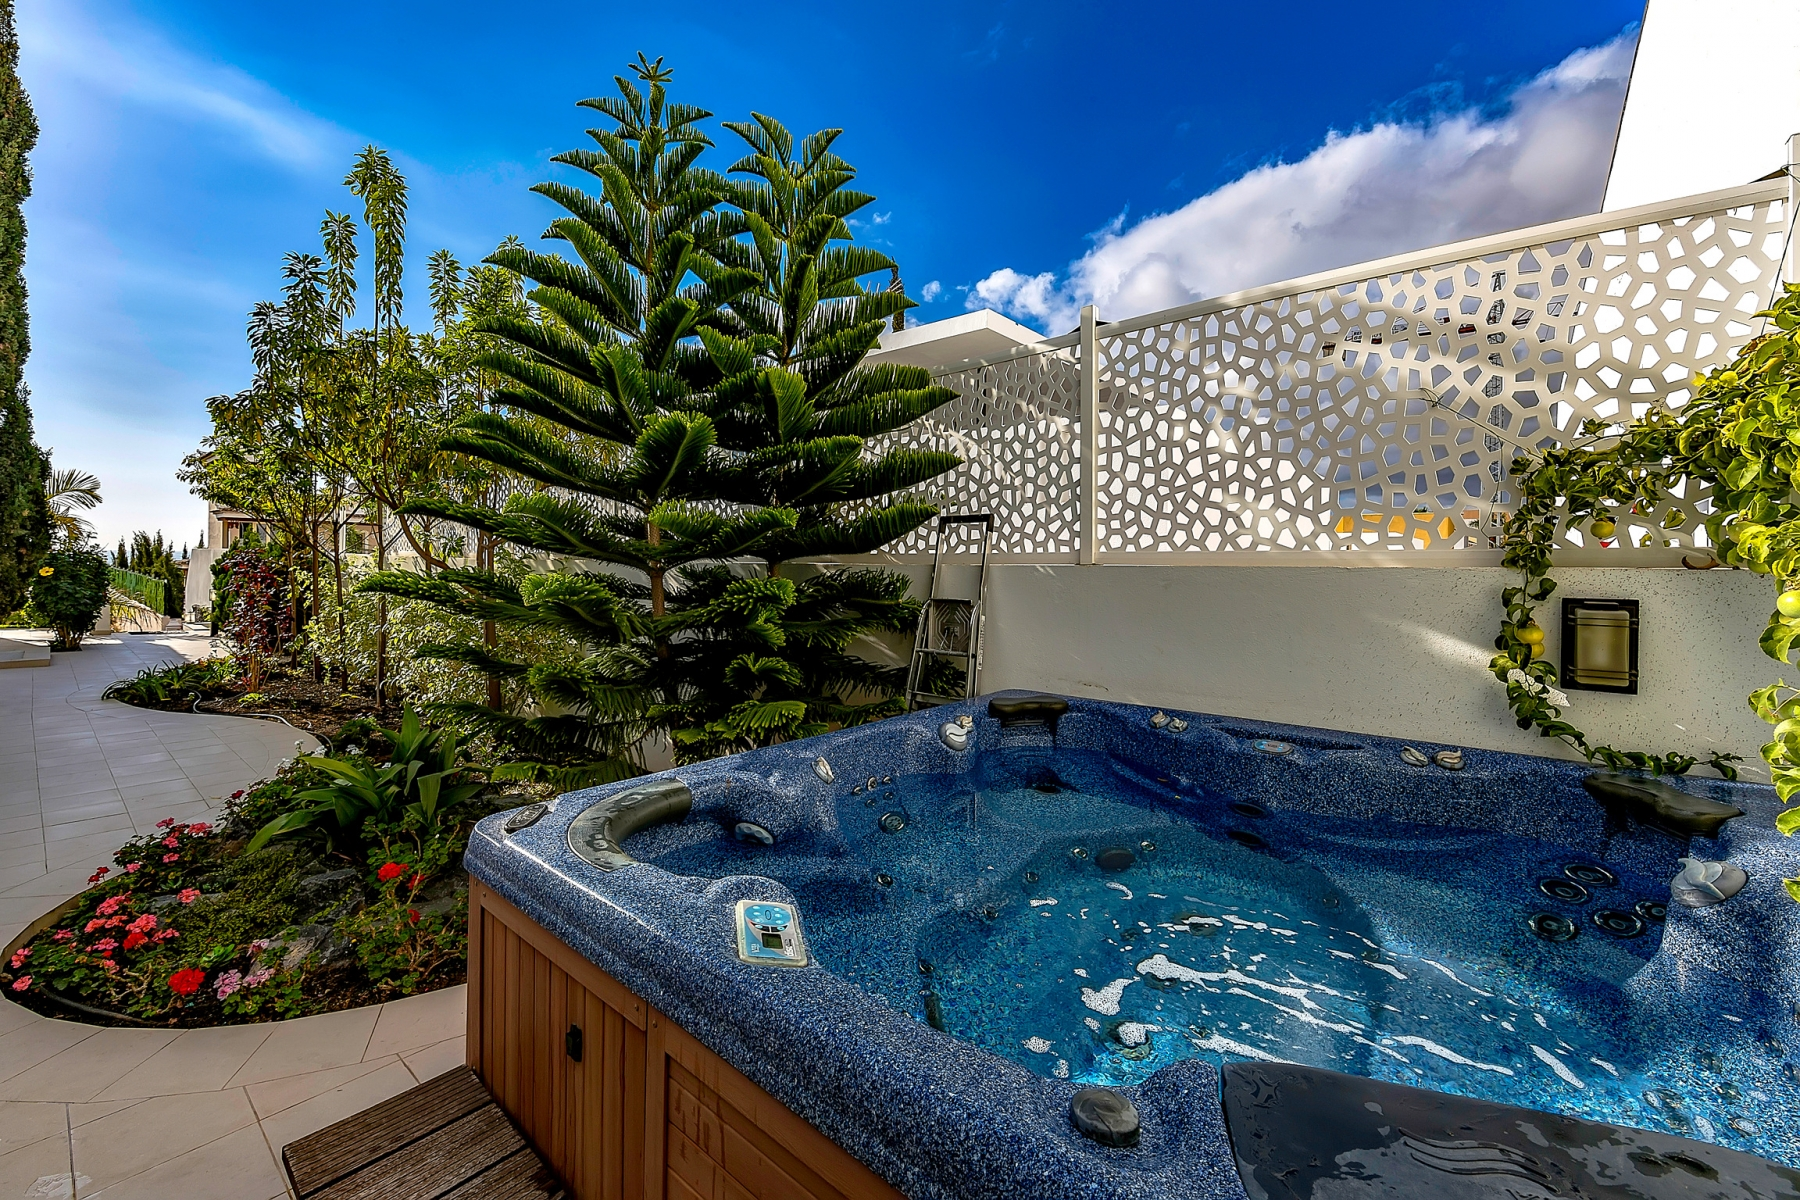 Properties for Sale in Tenerife, Canary Islands, Spain   SylkWayStar Real Estate. Luxury villa in the fashionable area of the south of the island of Tenerife – Madroñal.. Image-22823